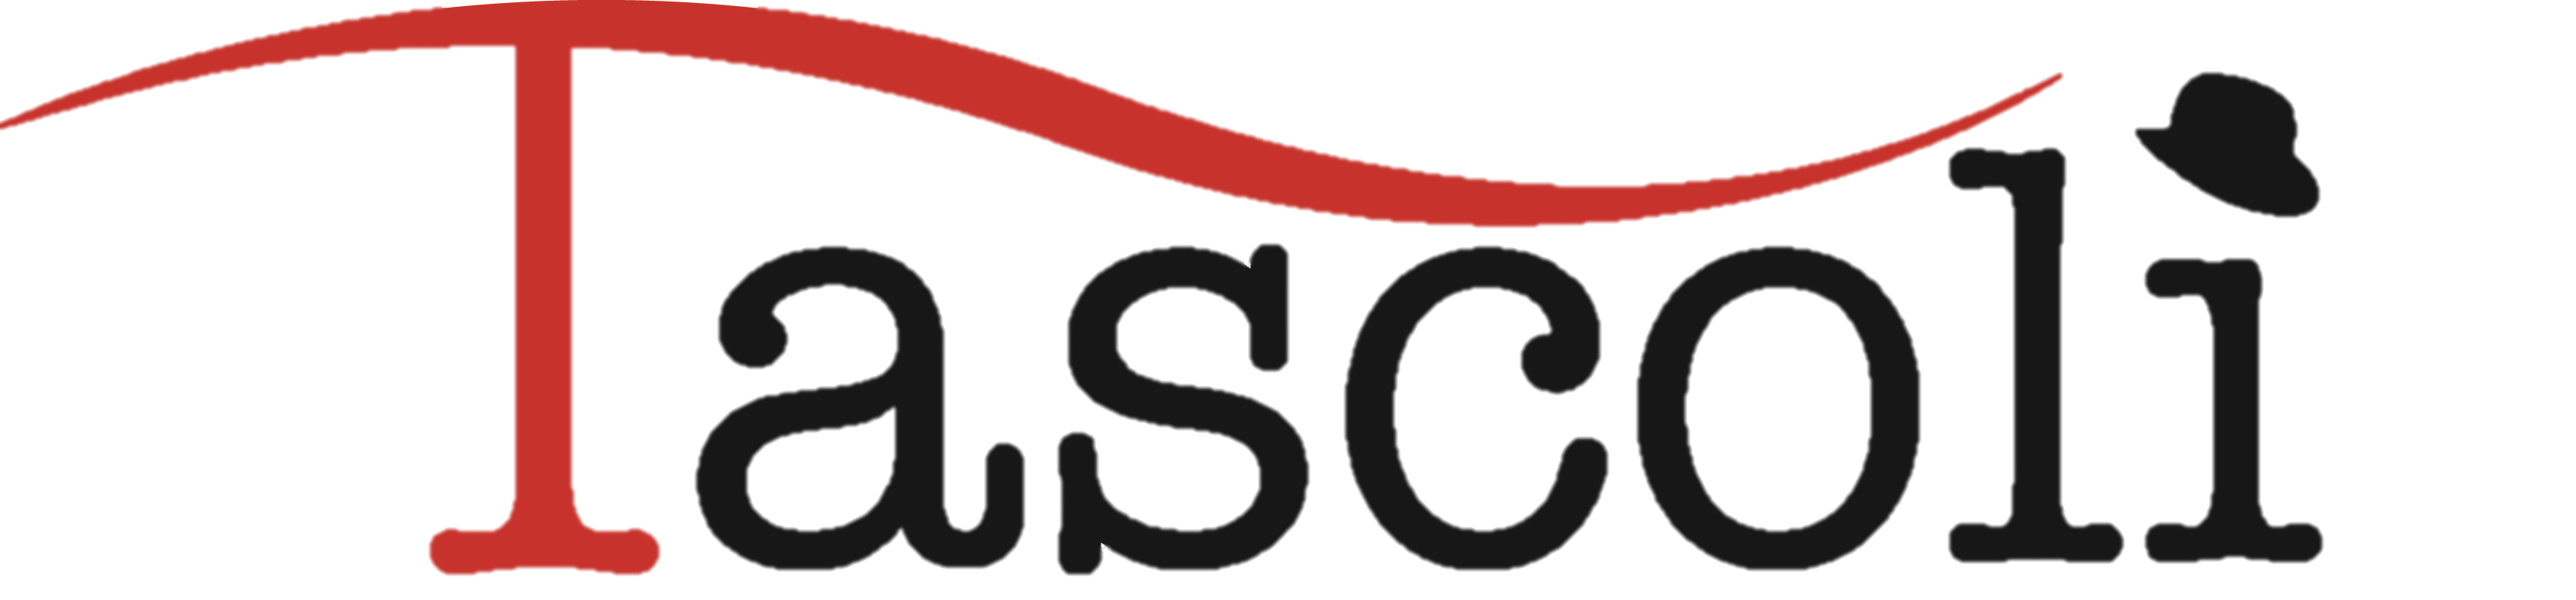 Tascoli Logo - Cloud ERP, Accounting, Businss System Experts